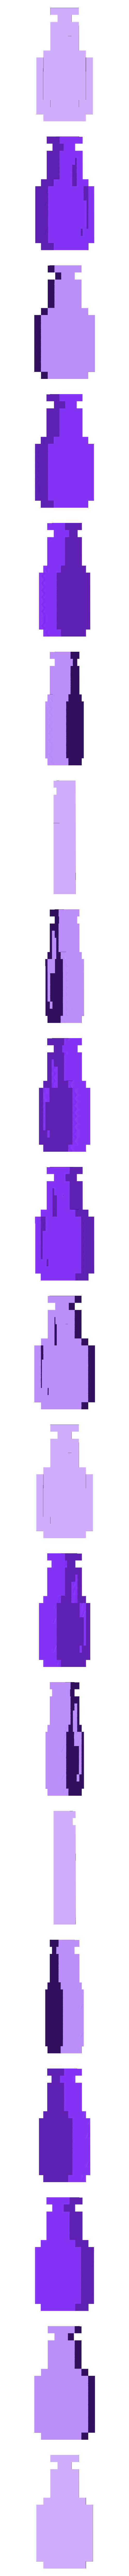 Potion.stl Download free STL file Zelda 8 bits Inventory menu with items • Object to 3D print, conceptify